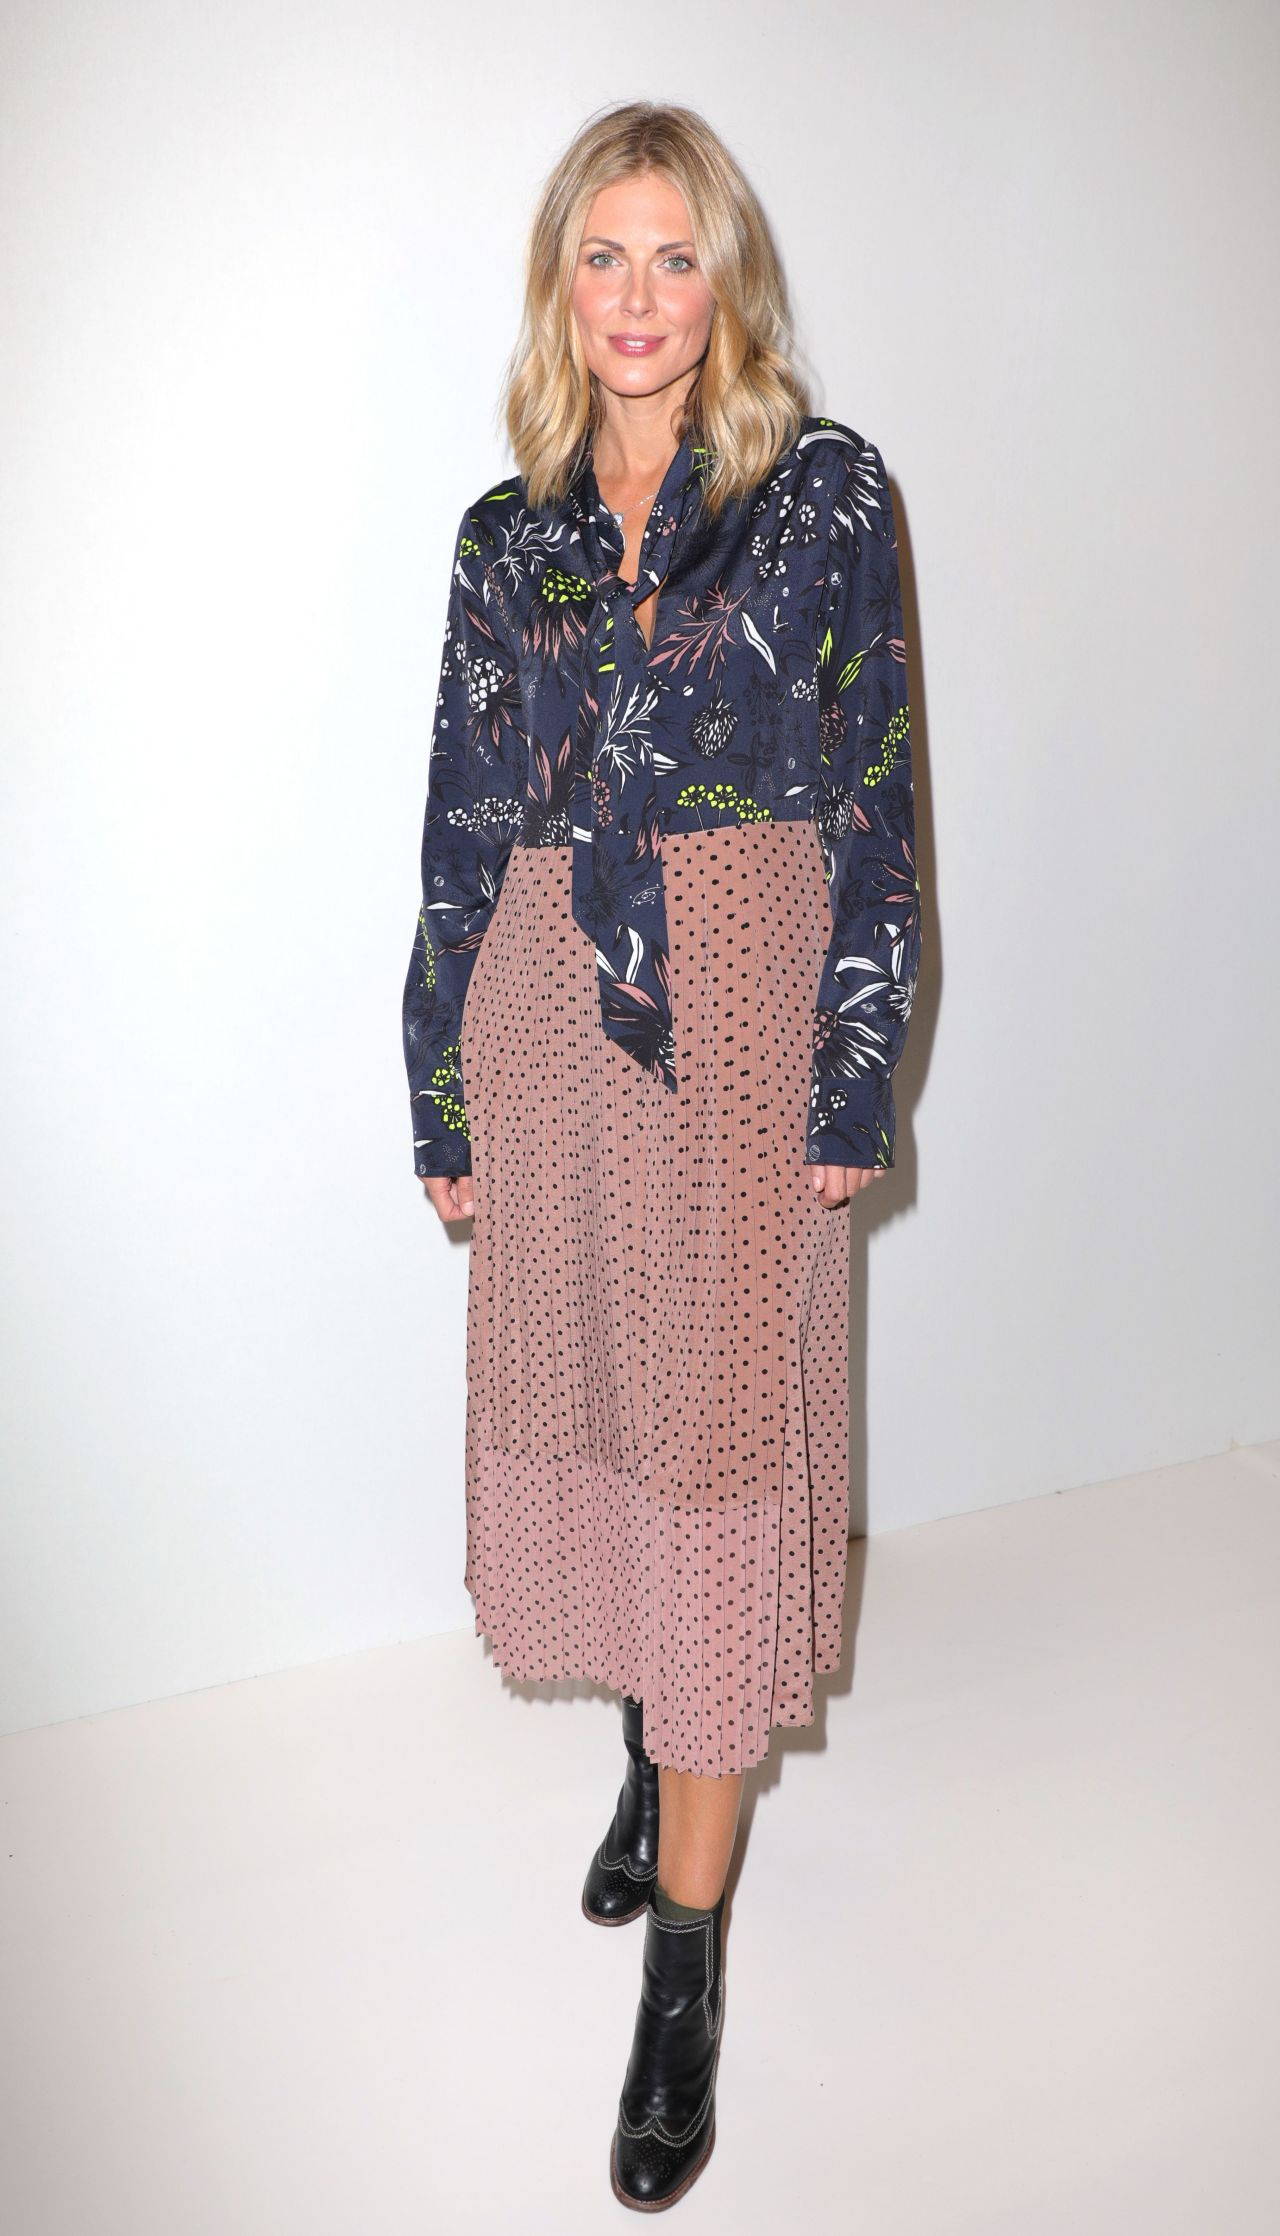 Donna air fashion scout one to watch show in london nudes (53 images)